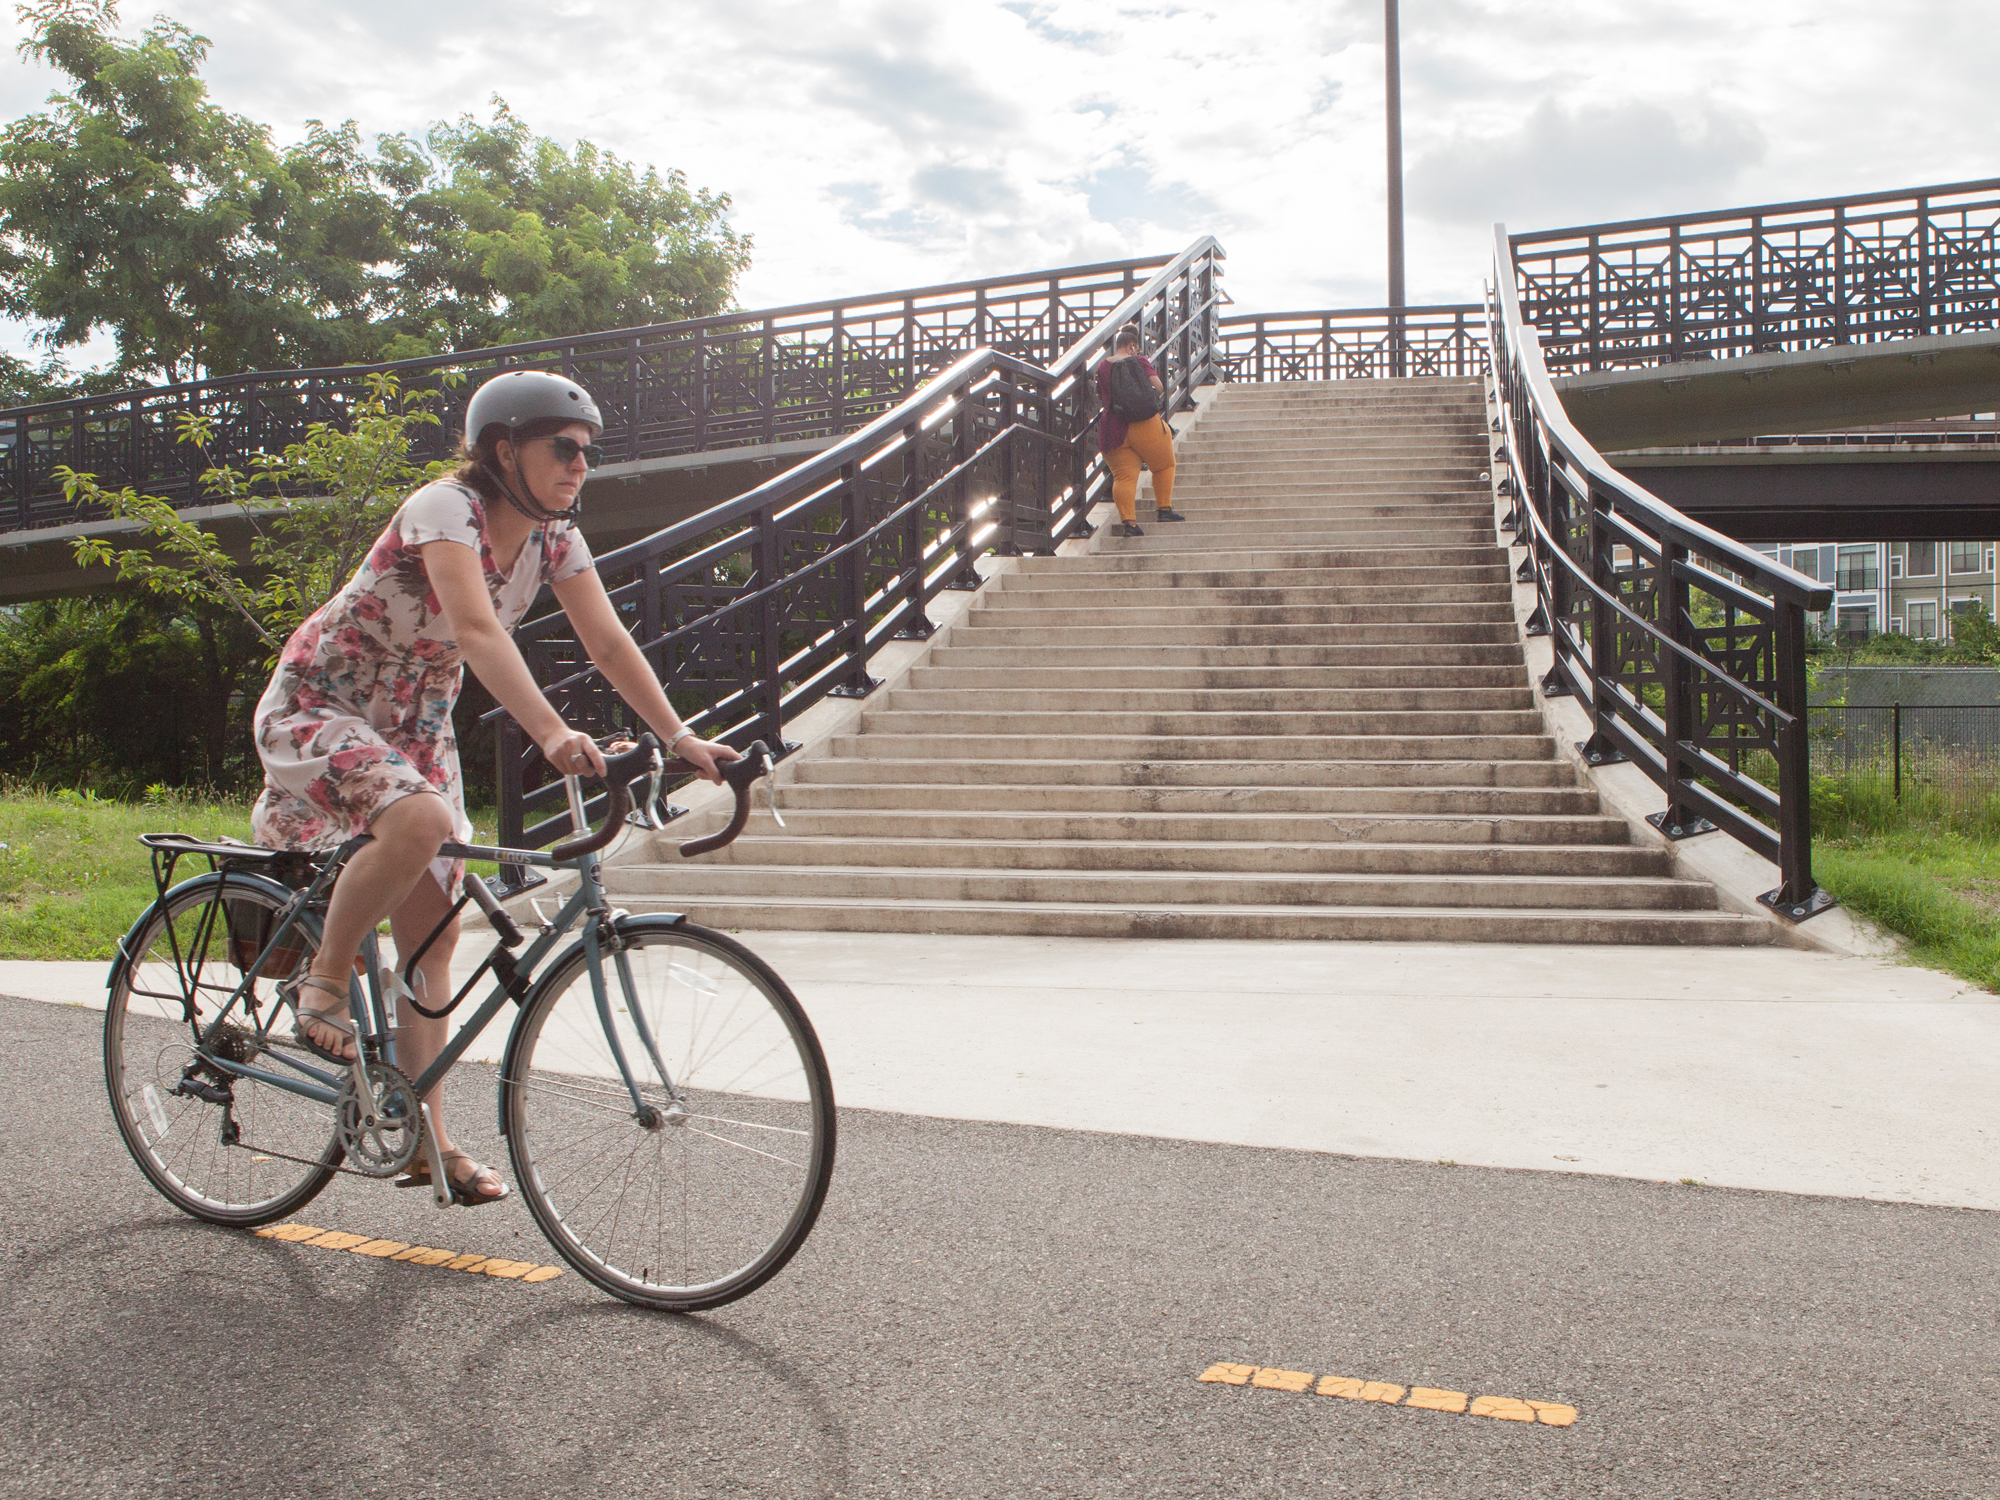 MBT woman biking near stairs